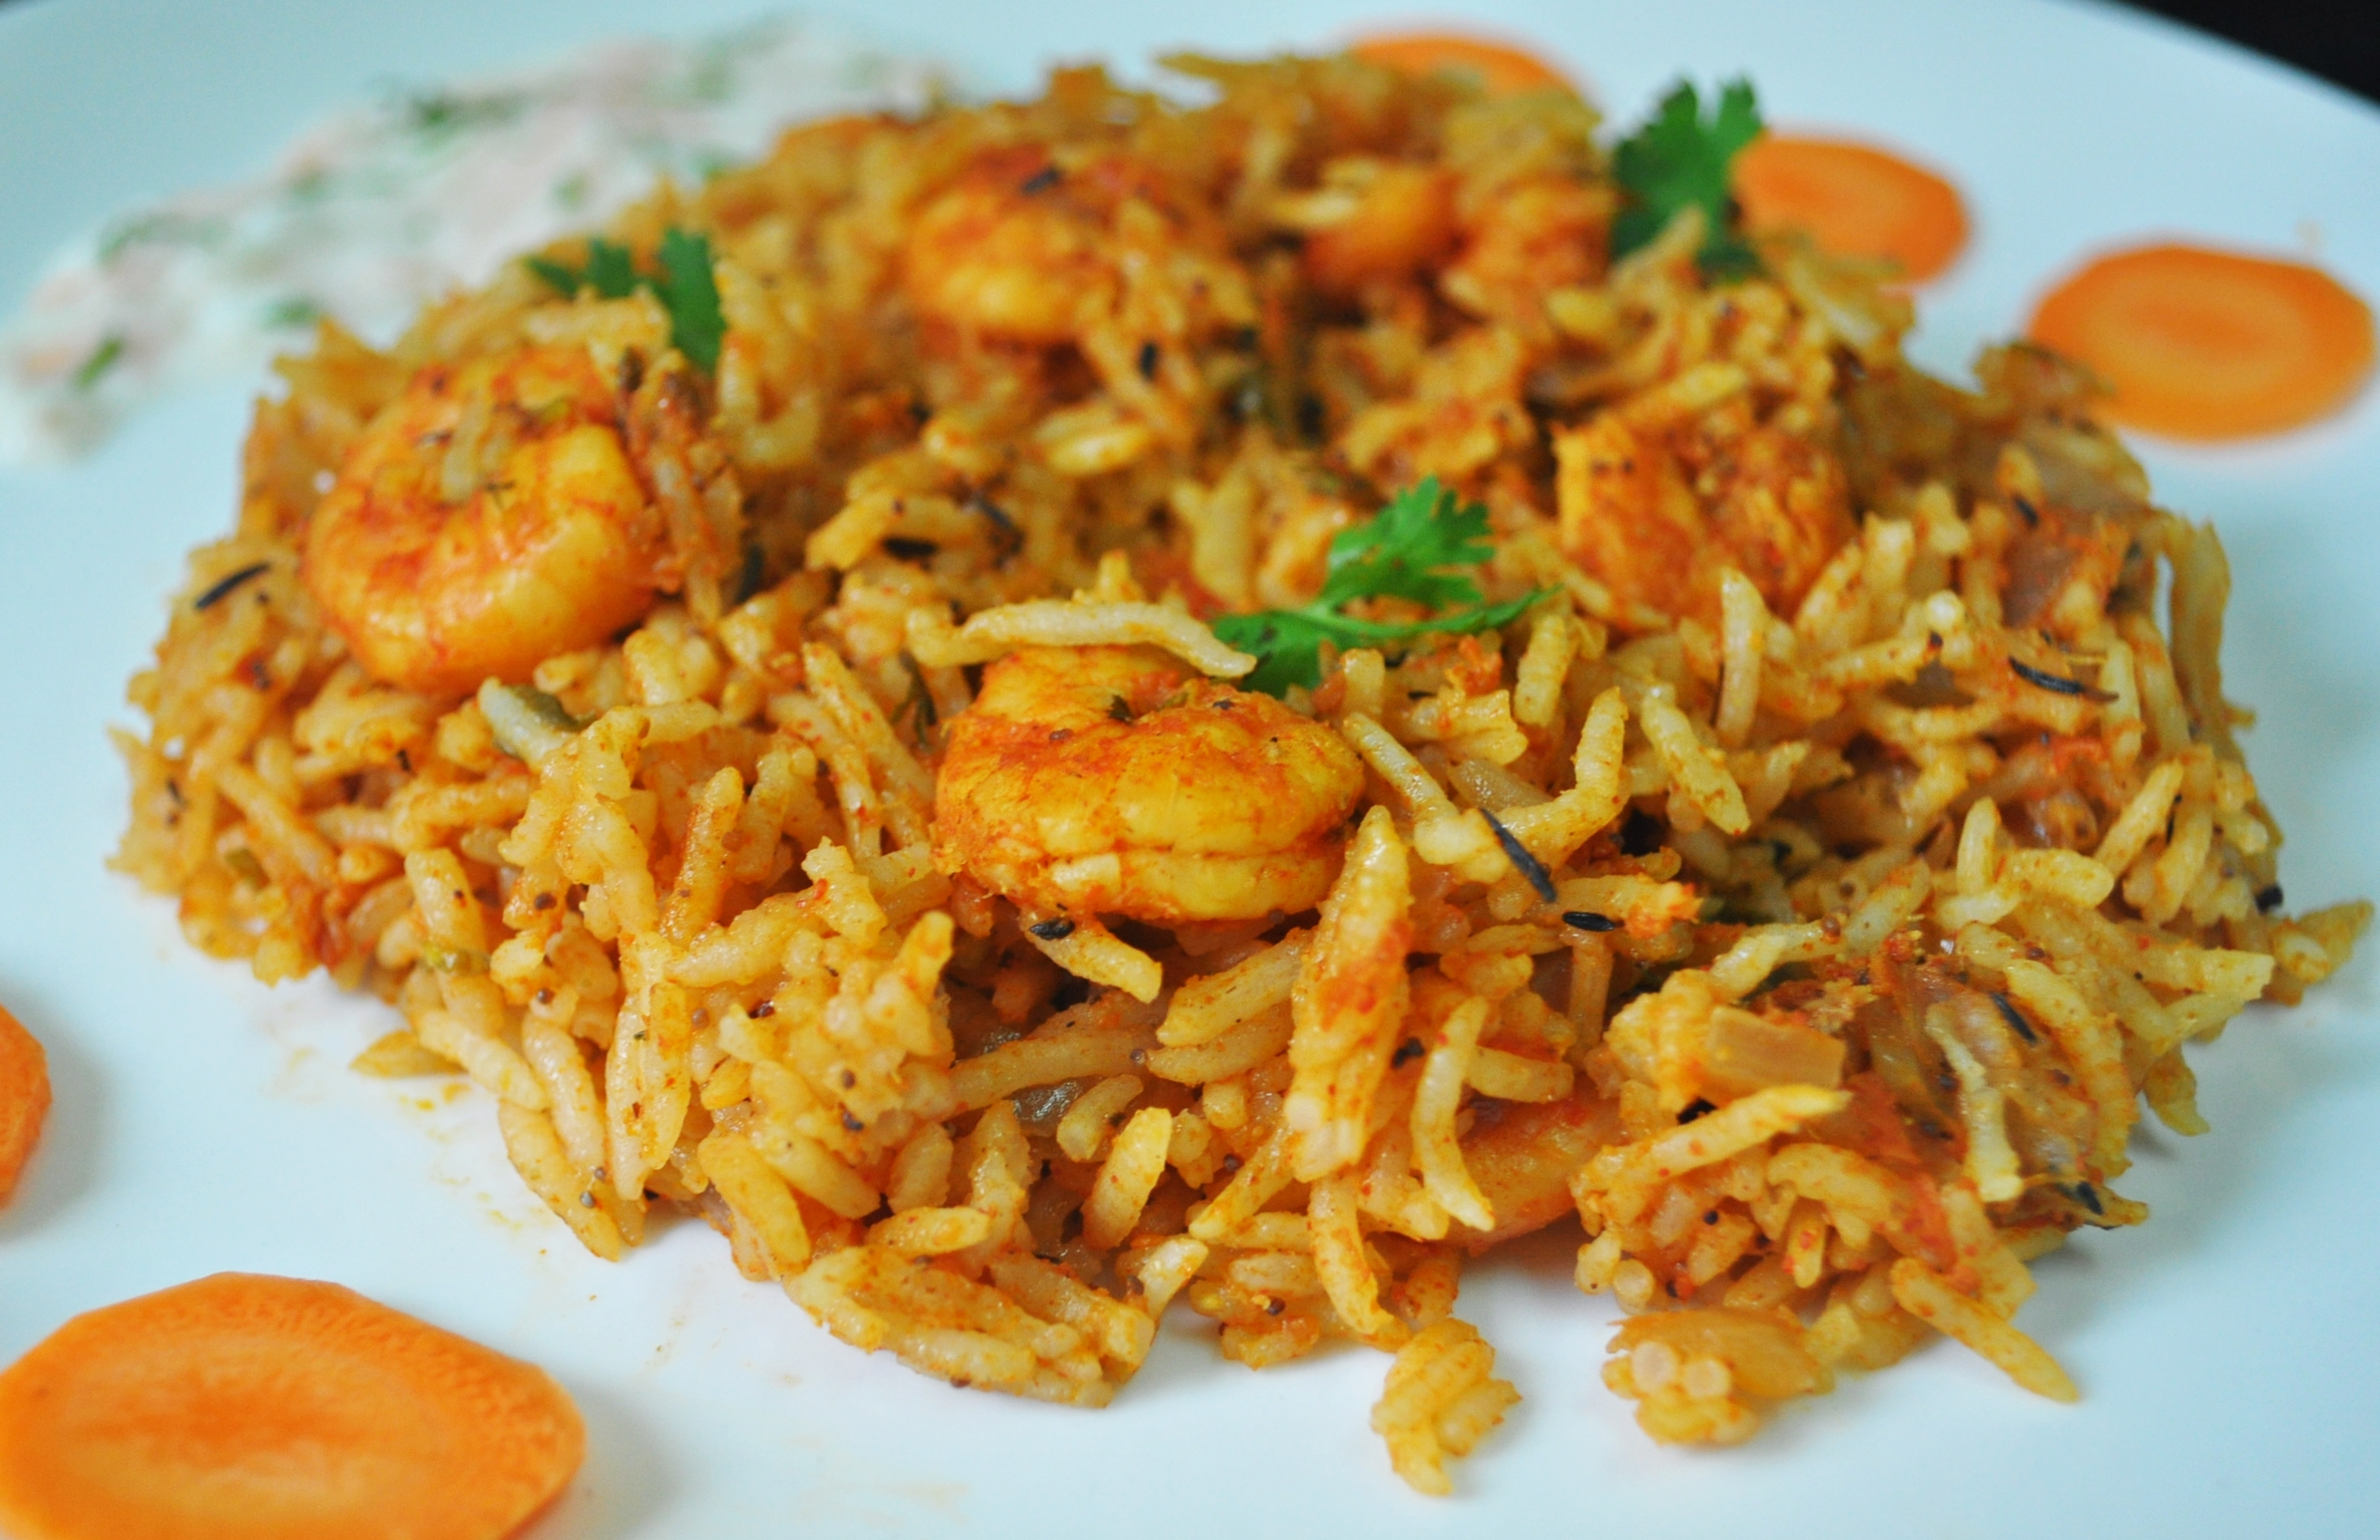 ... Prawn Biryani Recipe Biryani Recipe Images Rice Pics Chicken Recipe In